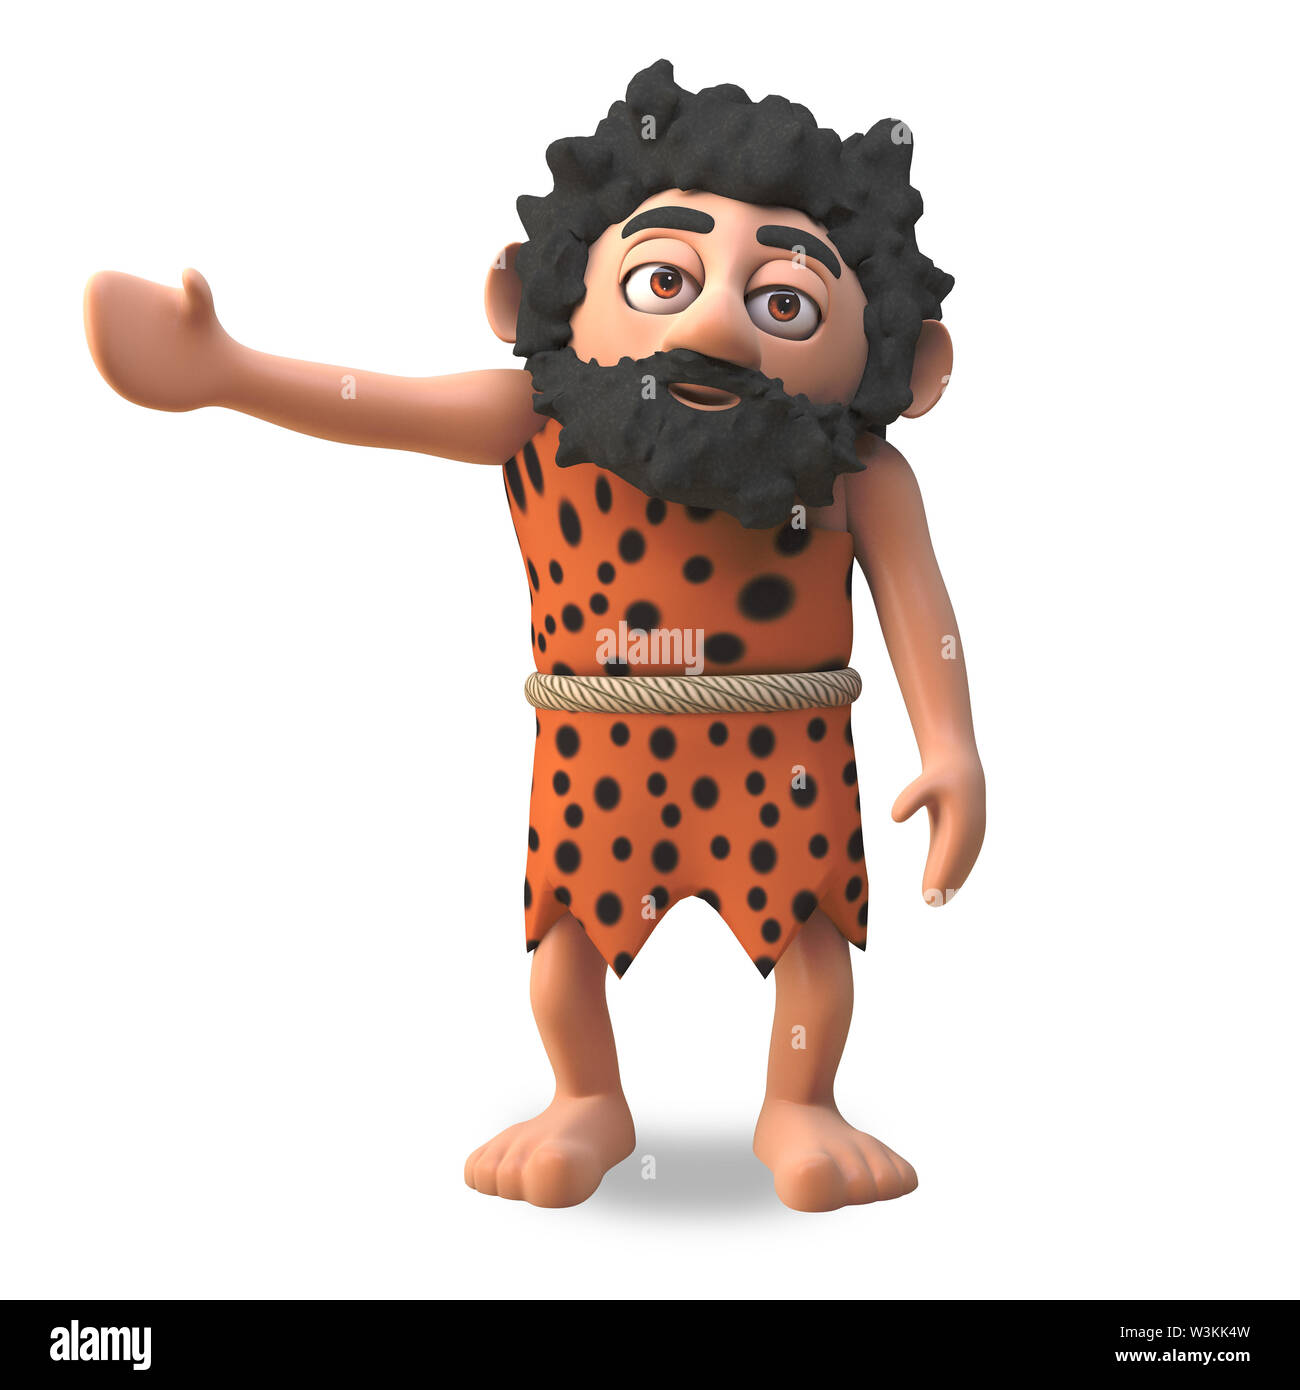 Mighty caveman 3d cartoon character gestures to the right with his arm, 3d illustration render - Stock Image